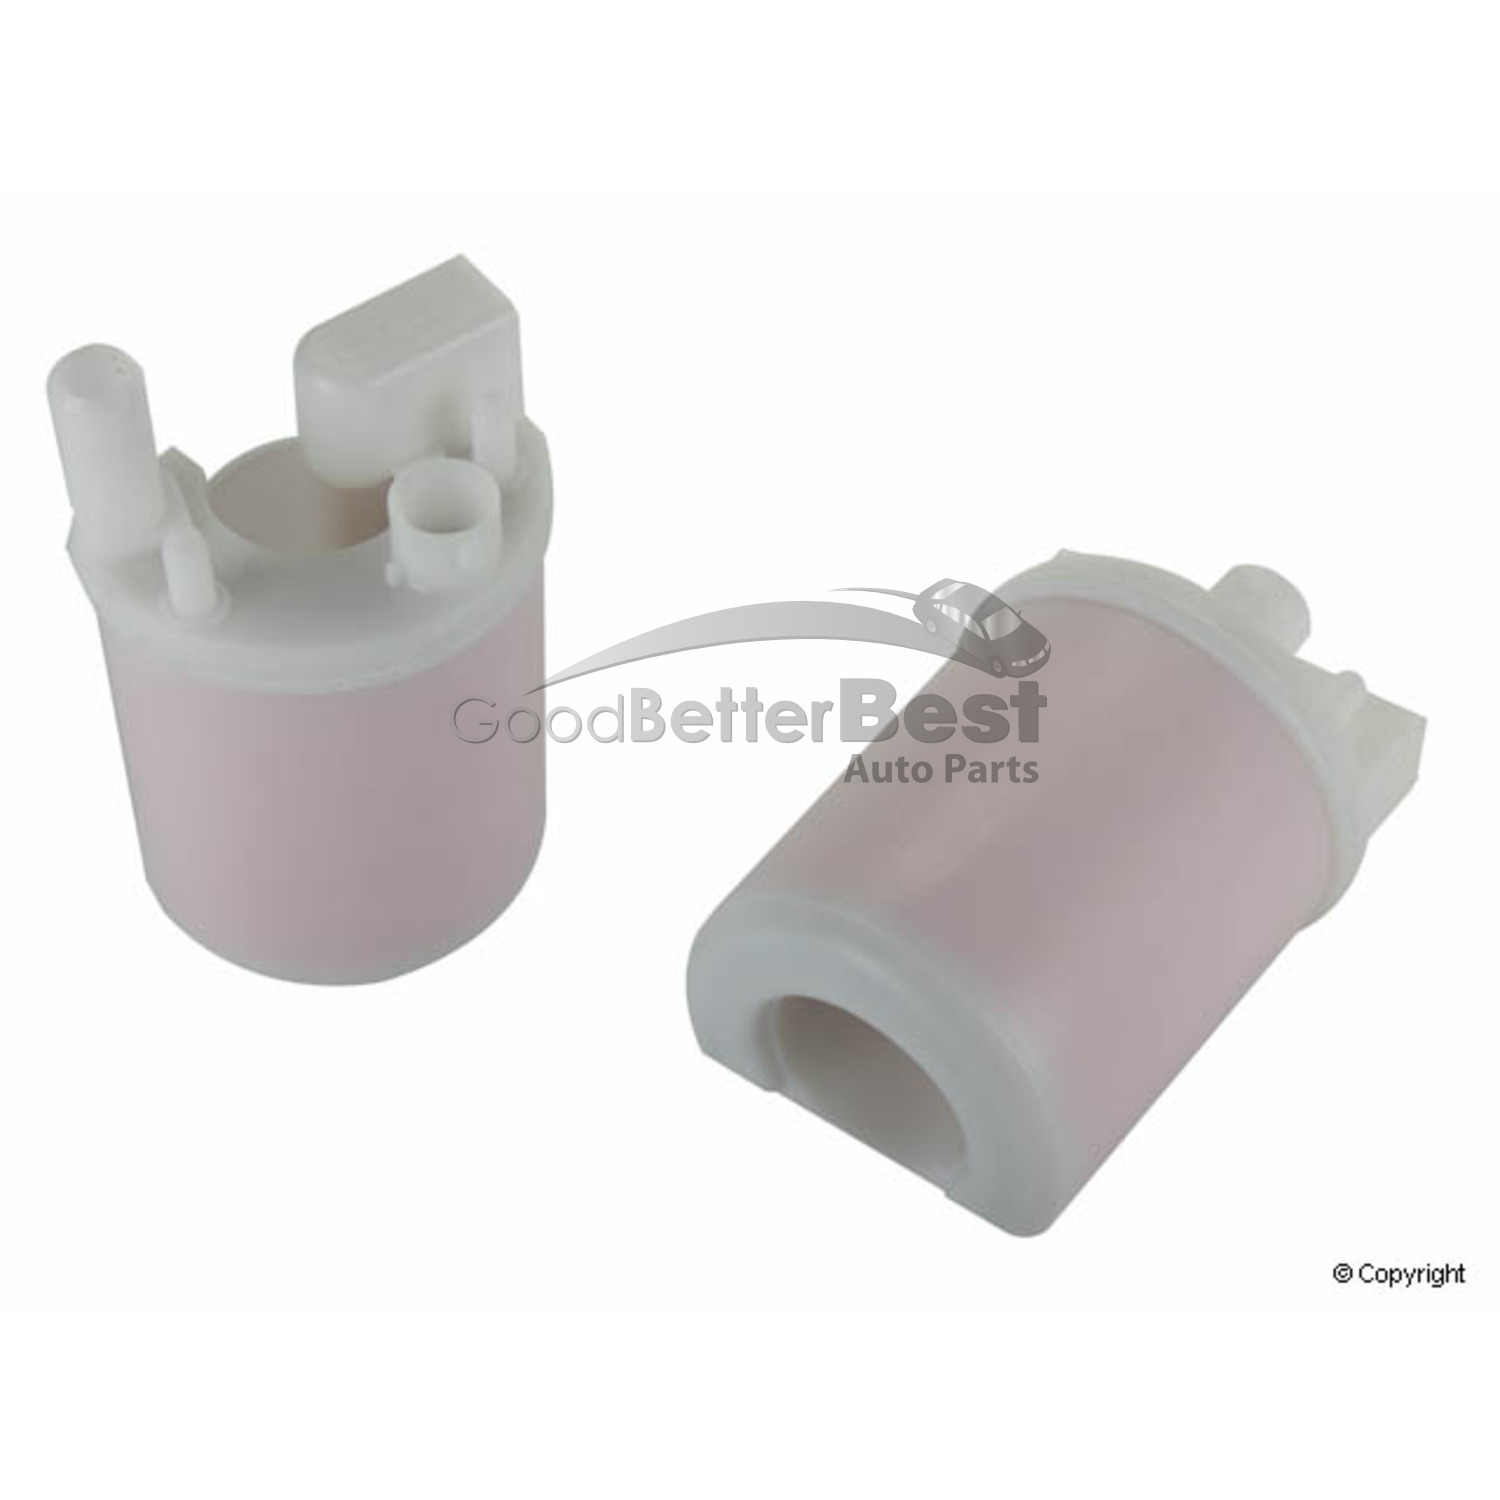 hight resolution of one new fuel filter 319110s100 for kia spectra spectra5